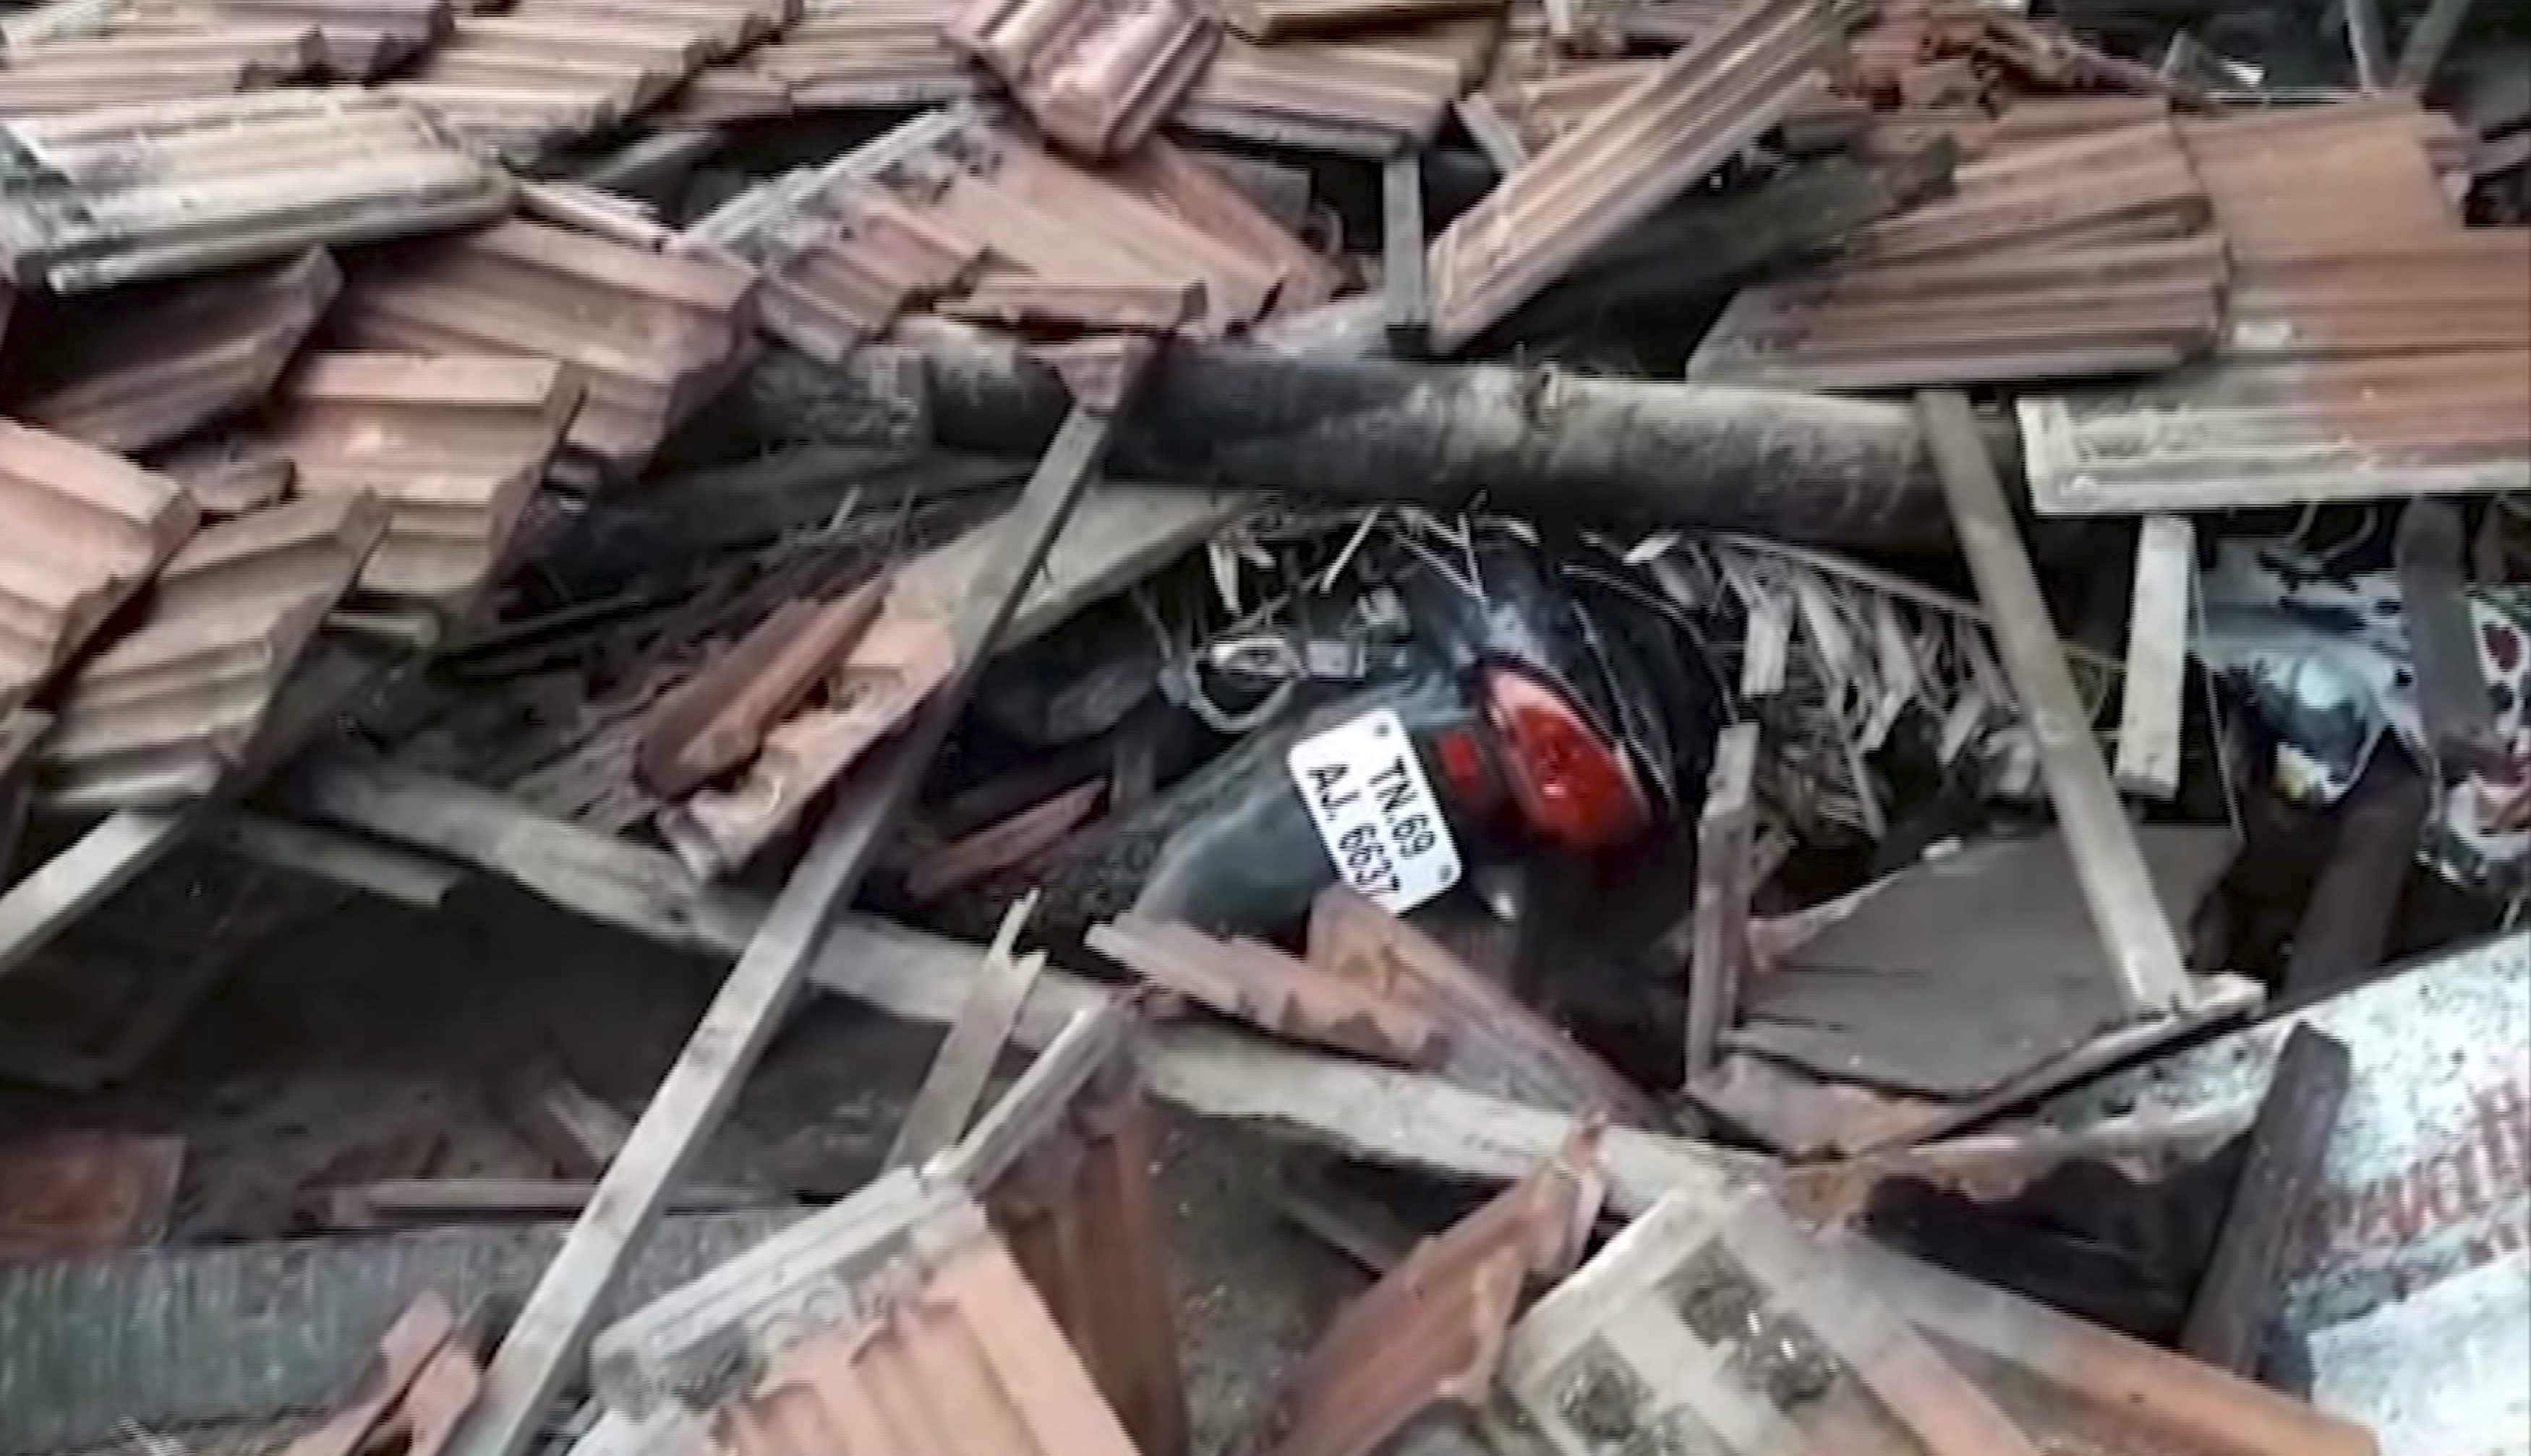 In this grab made from video provided by KK Productions, a motorcycle is covered in debris from a house that collapsed when a cyclone struck Nagapattinam, in the southern Indian state of Tamil Nadu, Friday, Nov. 16, 2018. Cyclone Gaja hit the coast of southern India on Friday, killing more than 10 people and damaging homes after more than 80,000 residents were evacuated. (KK Production via AP)